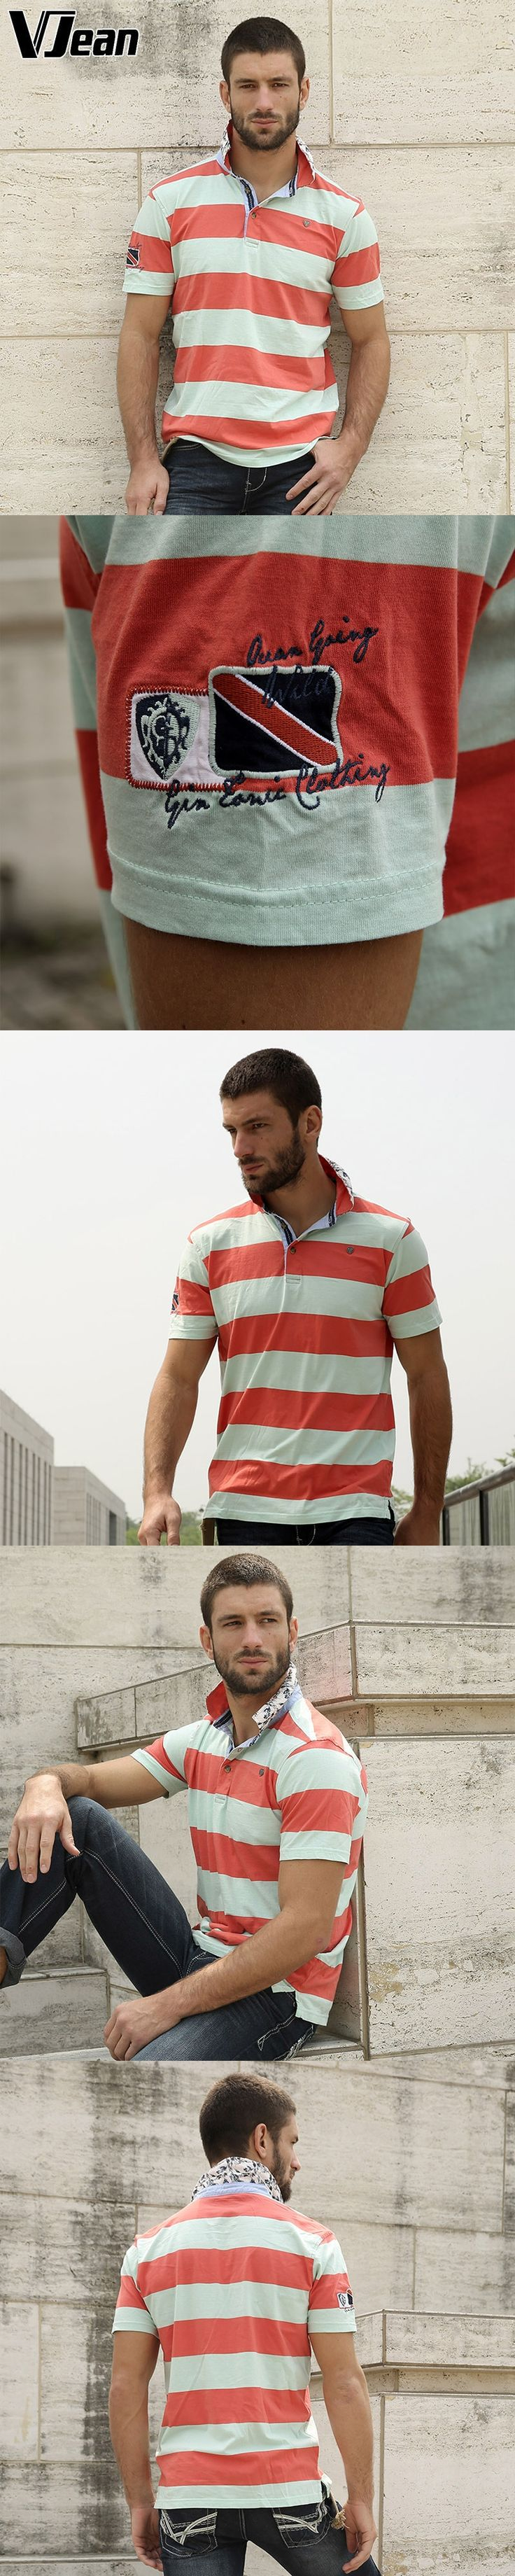 V JEAN  Men's Casual shirt Striped  Polo Shirt  100%cotton plush size camisa polo yarn dyed   Washed